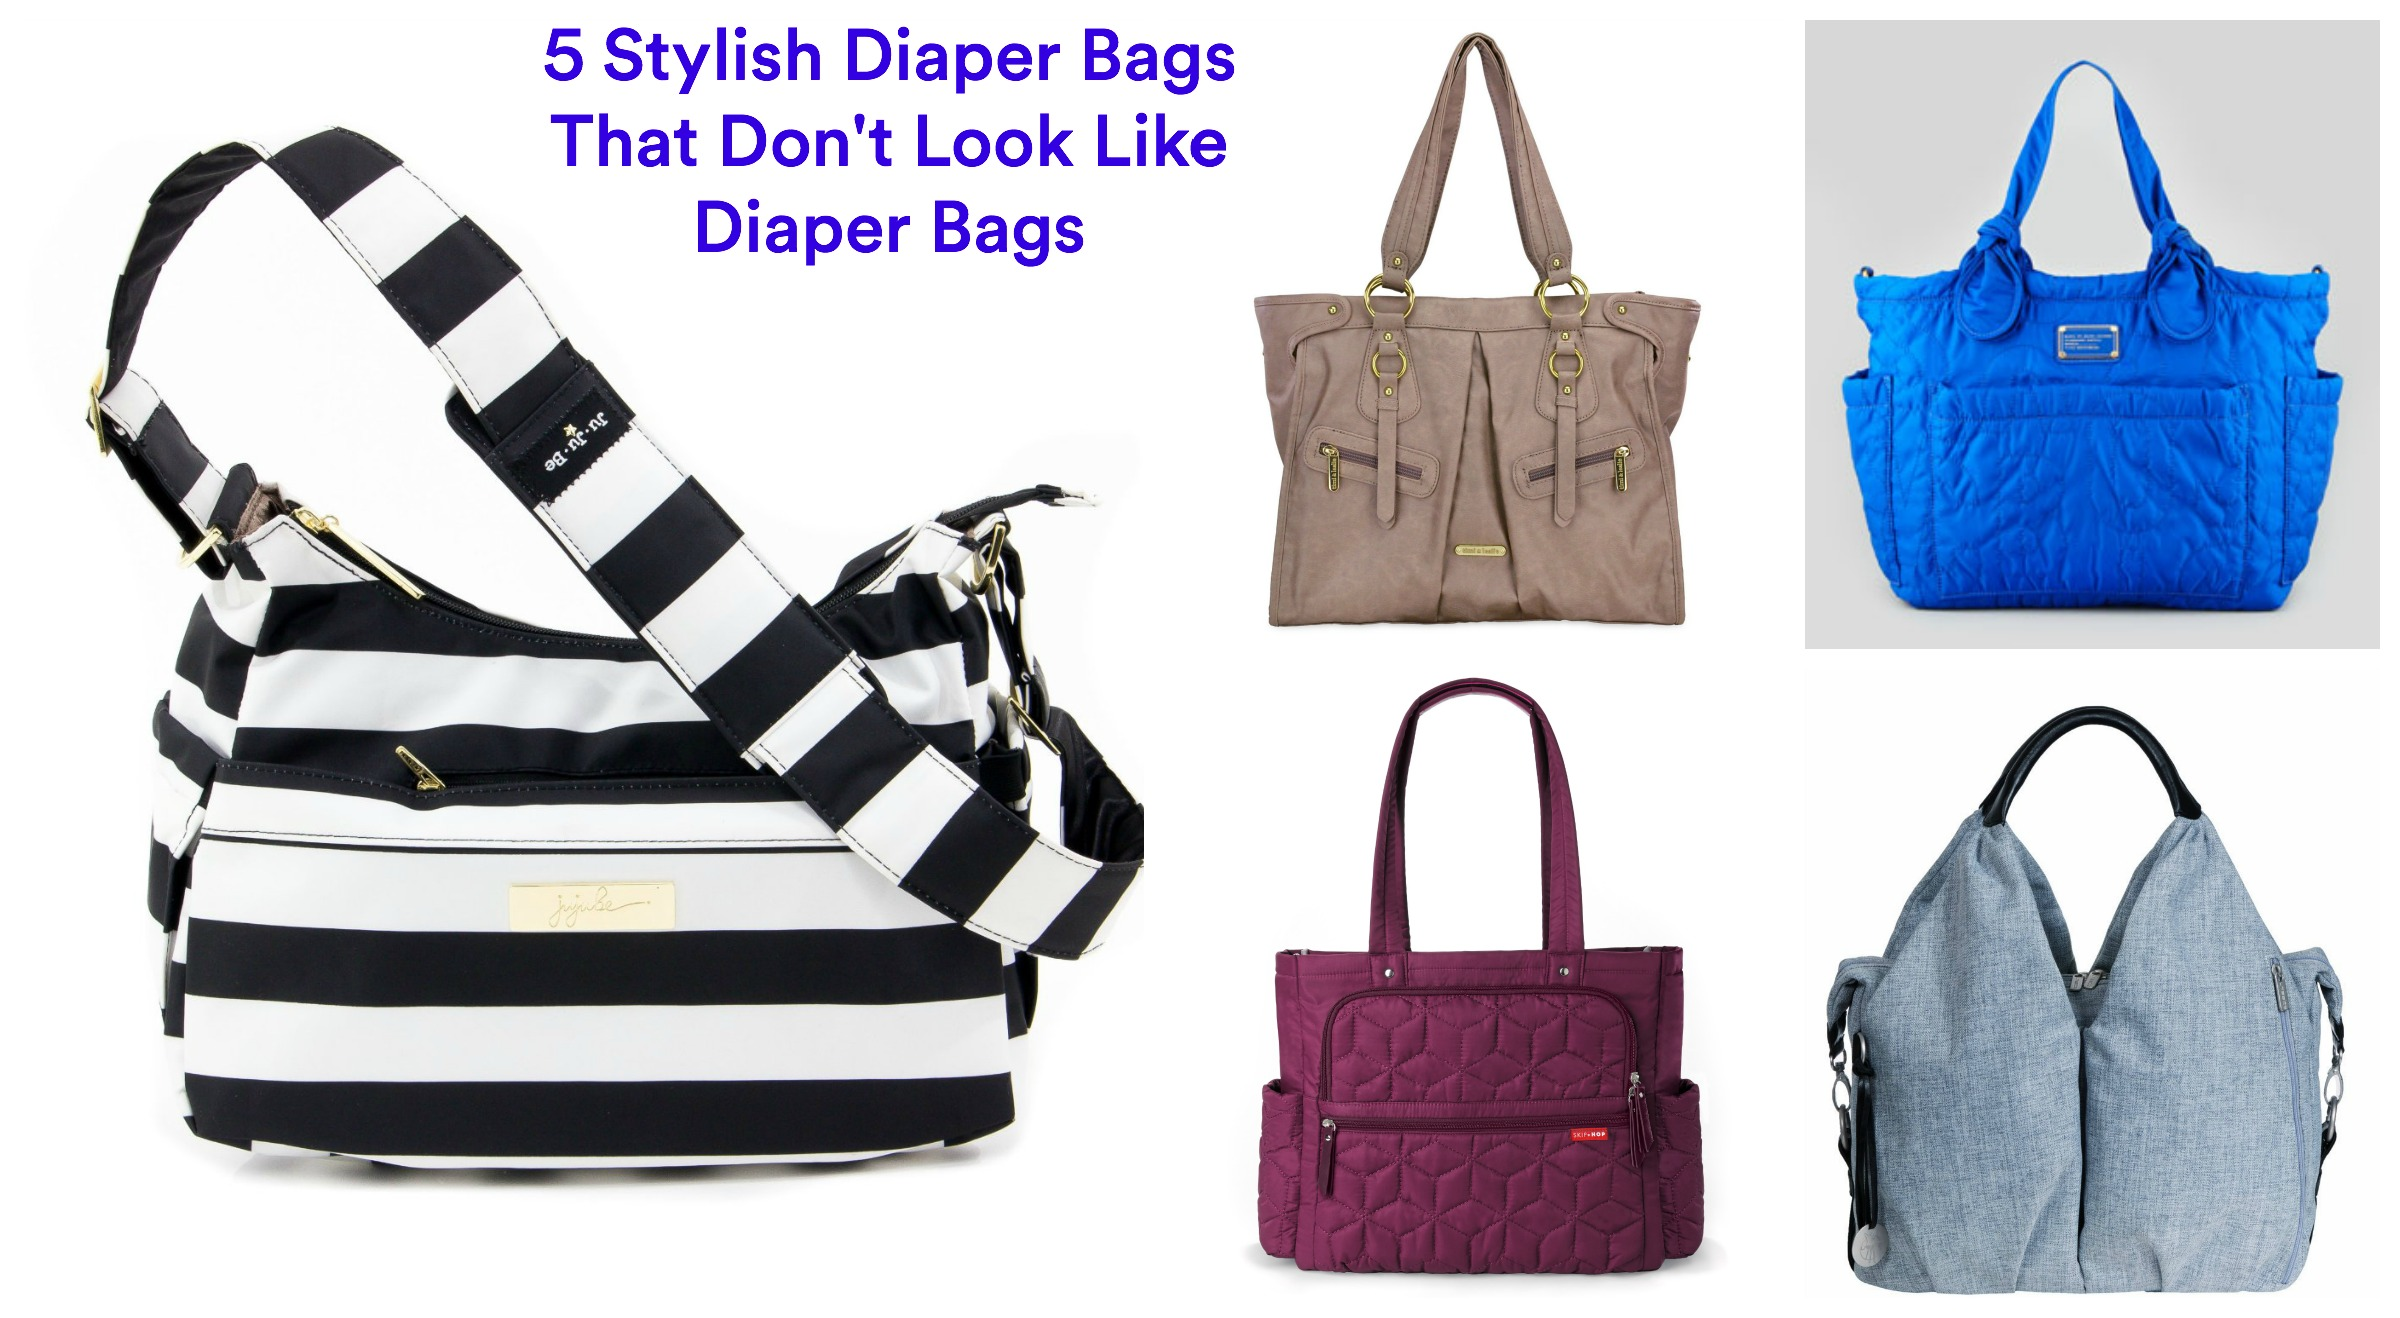 gugu guru 5 stylish diaper bags gugu guru blog. Black Bedroom Furniture Sets. Home Design Ideas